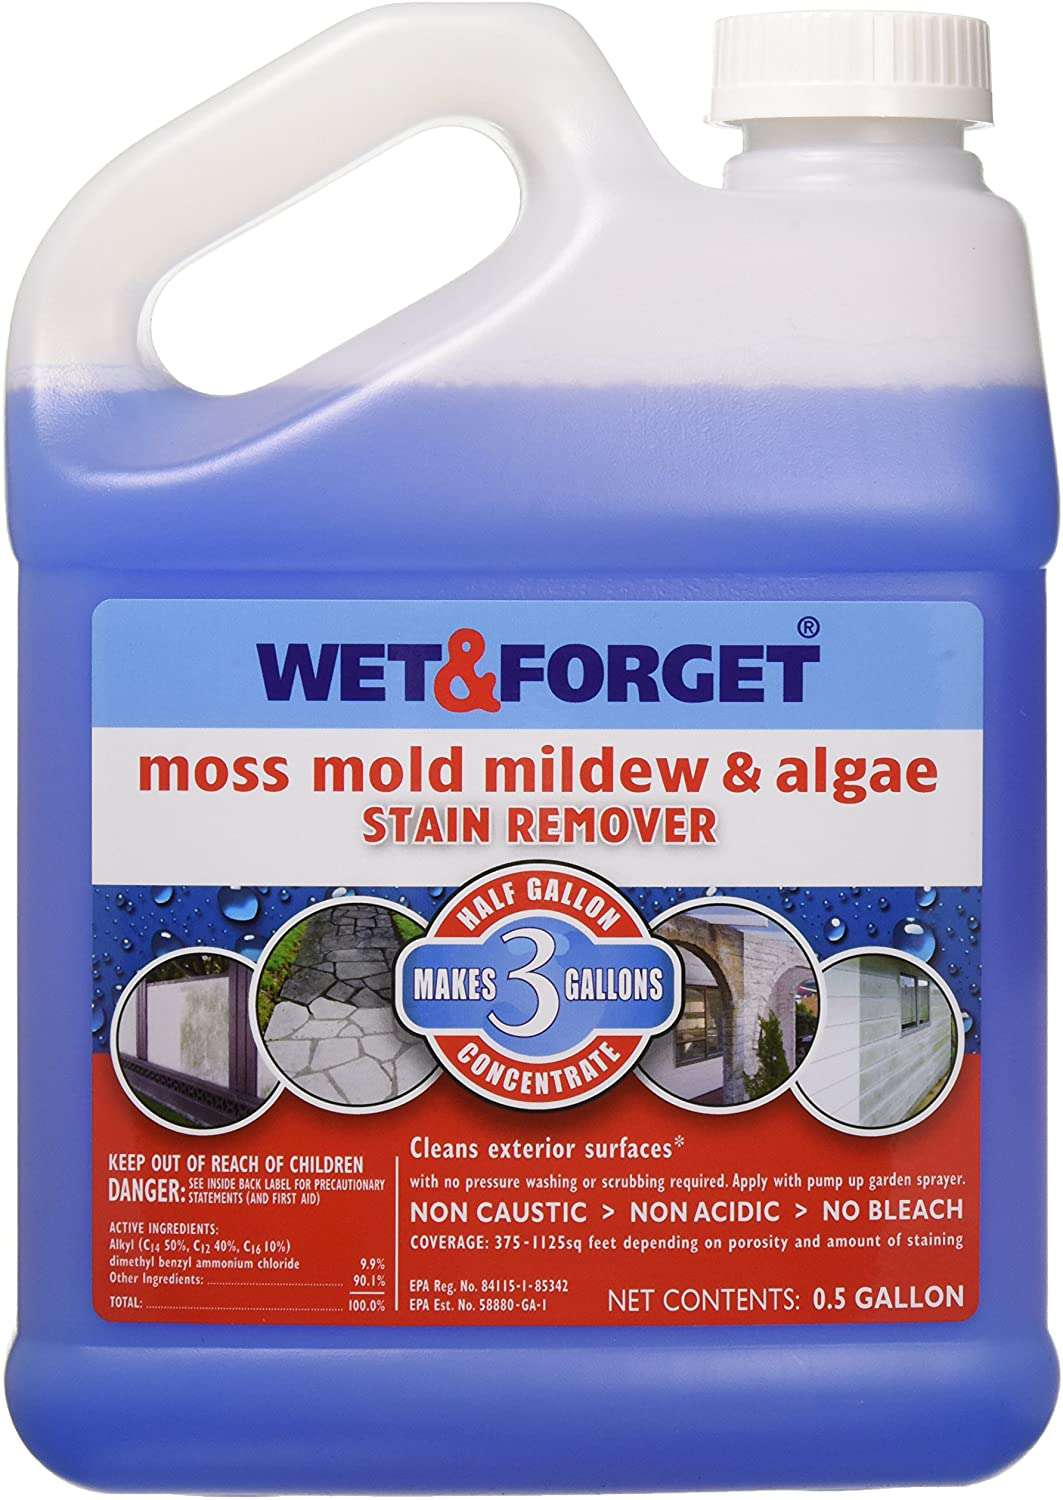 Wet & Forget Wet and Forget Moss, Mold, Mildew & Algae Stain Remover